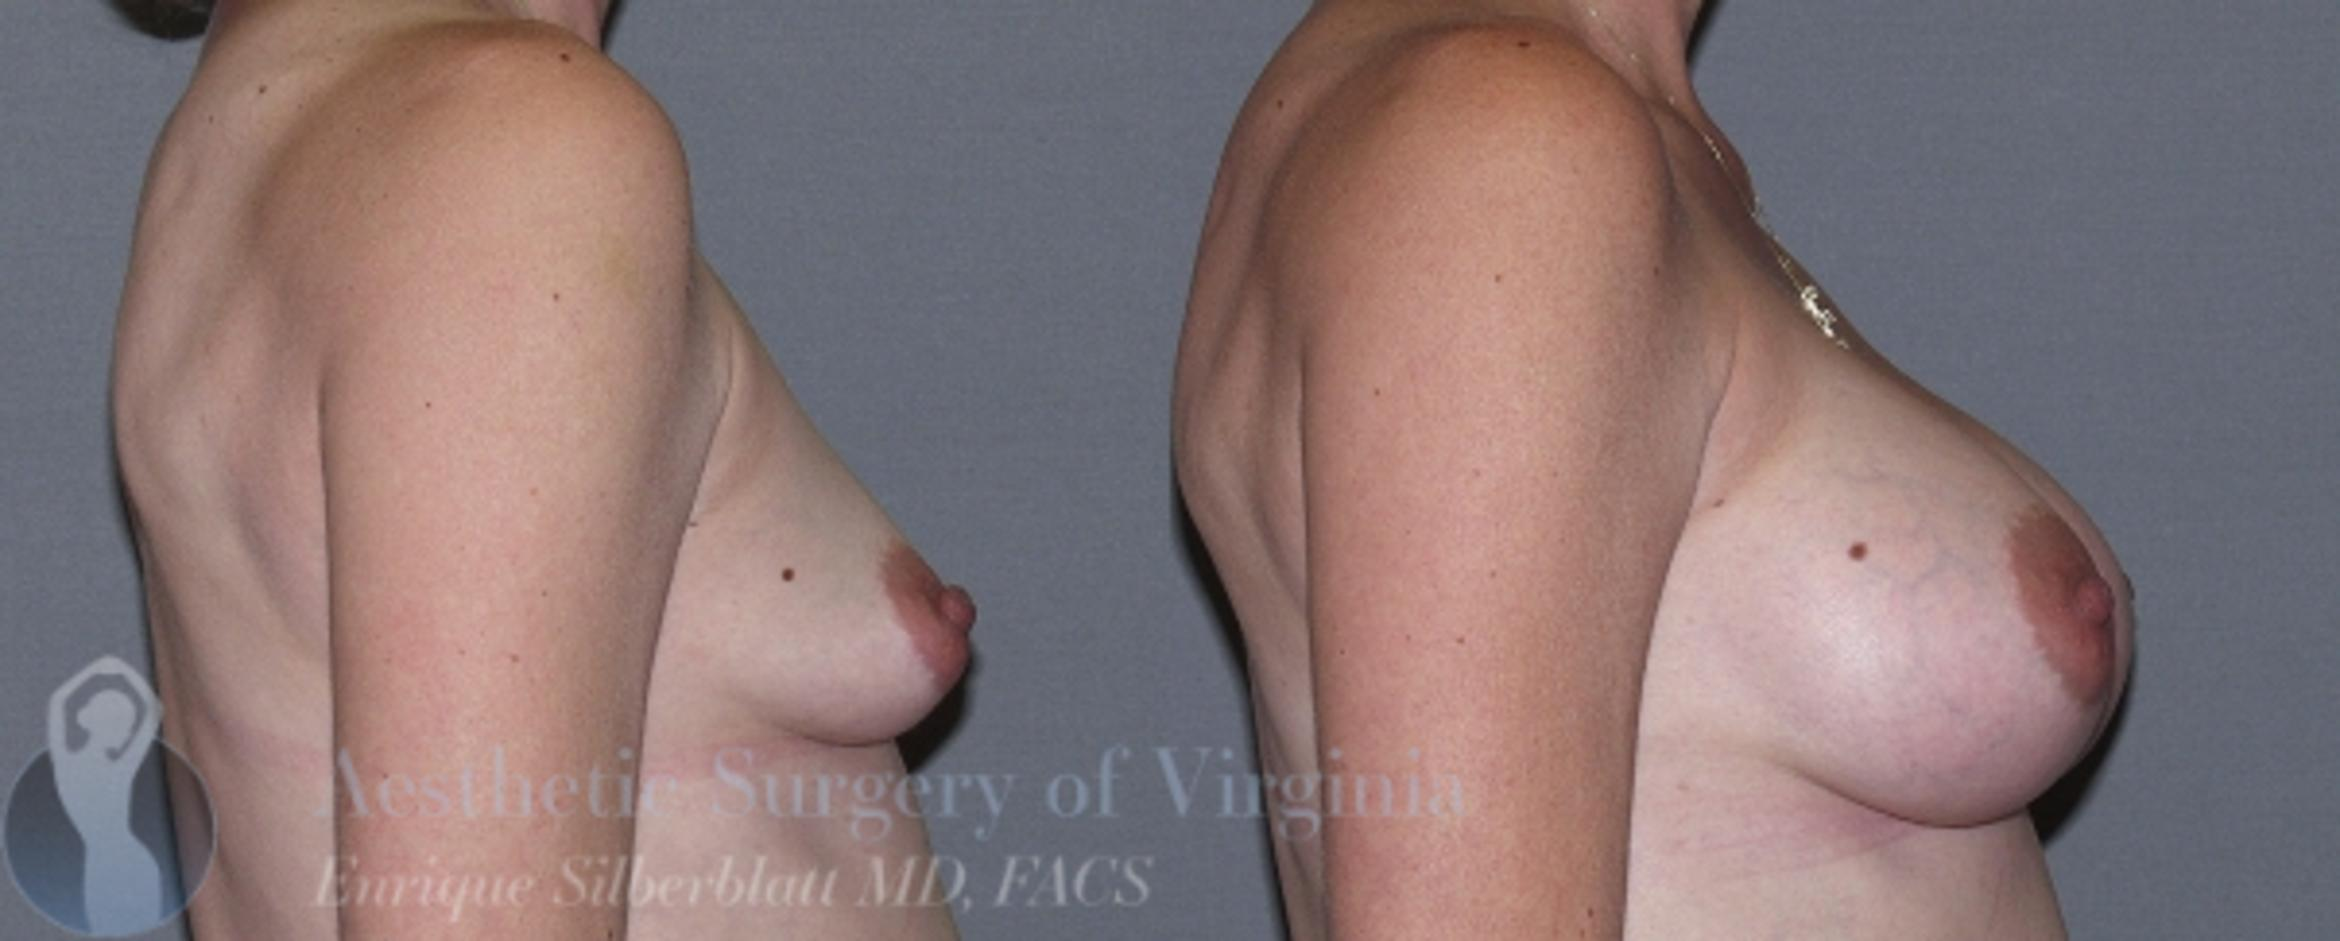 Breast Augmentation Case 12 Before & After View #5 | Roanoke, VA | Aesthetic Surgery of Virginia: Enrique Silberblatt, MD